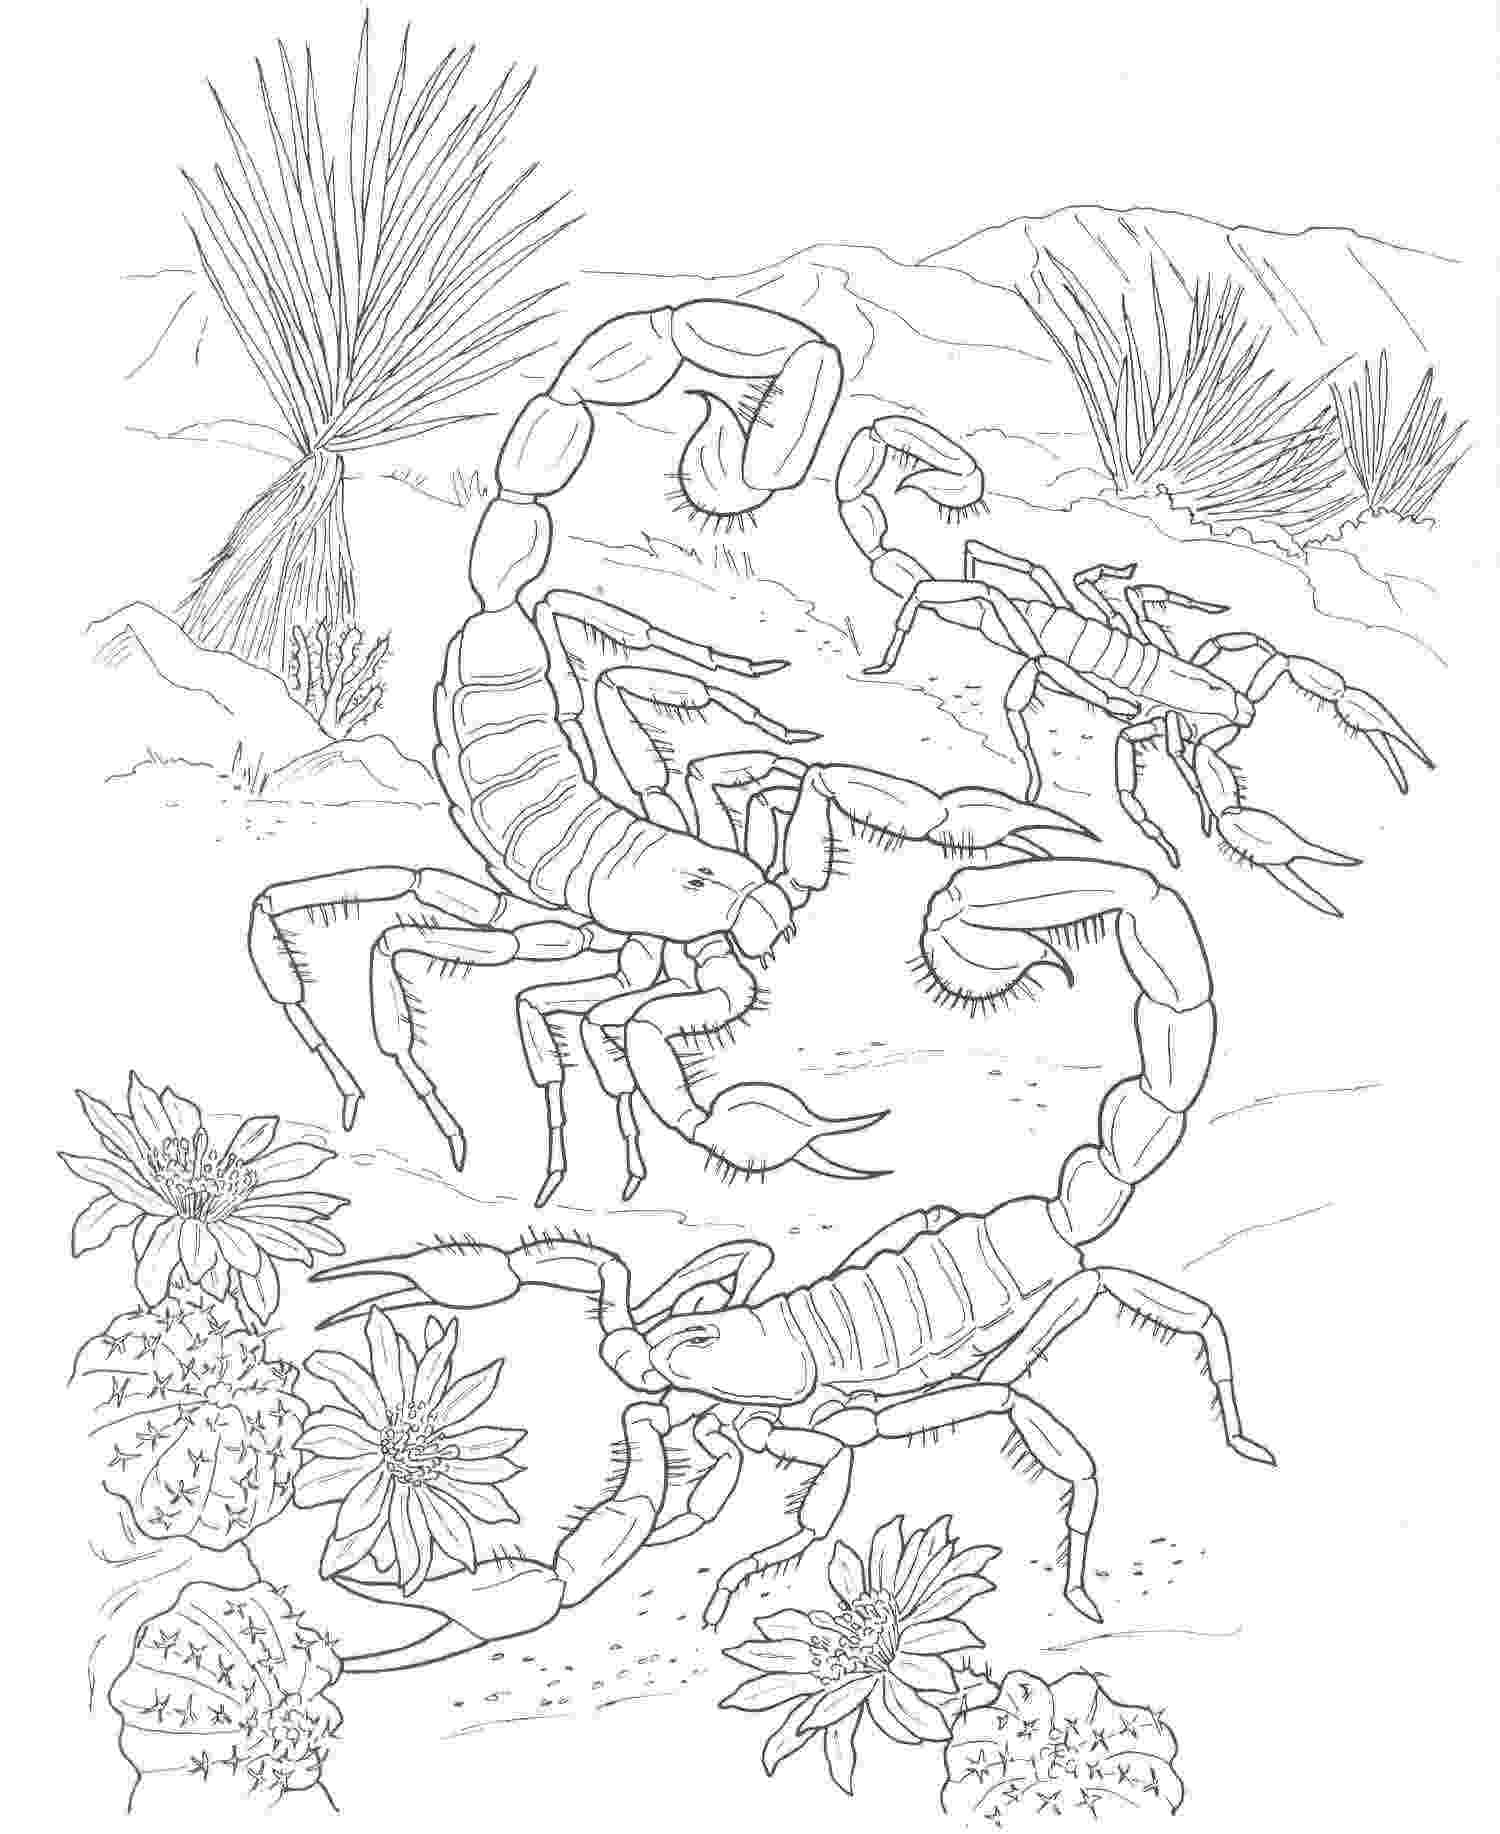 free printable coloring pages of desert animals desert coloring pages best coloring pages for kids coloring printable animals of pages free desert